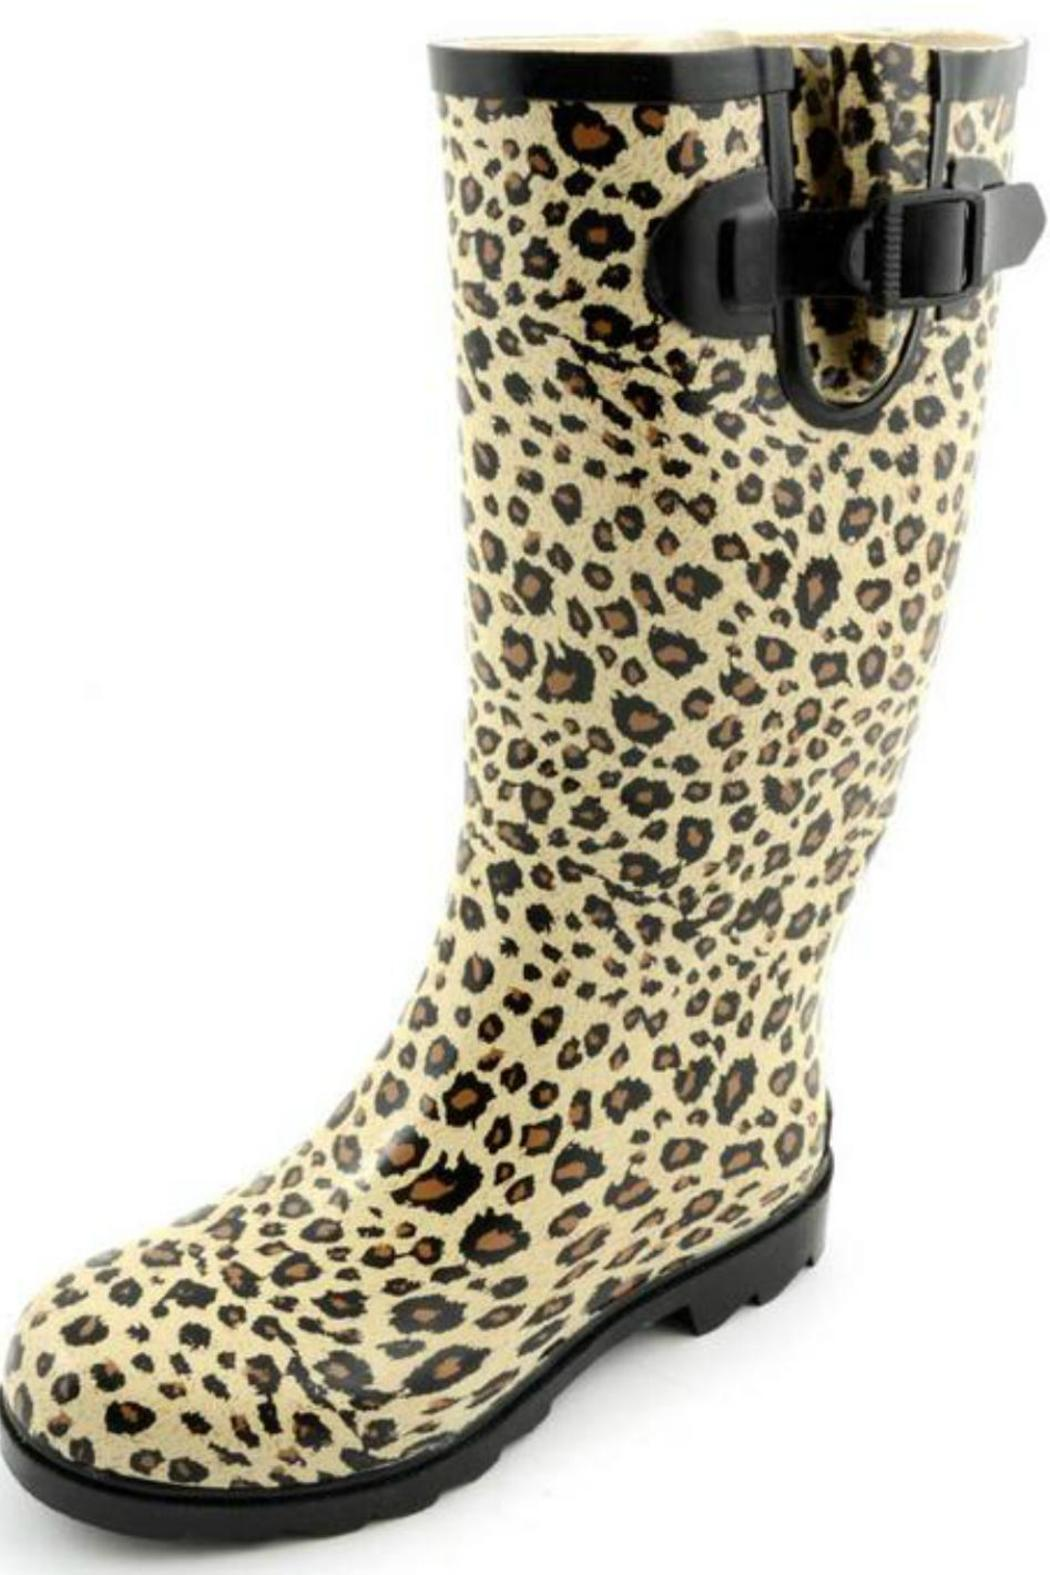 Corkys Cheetah Rain Boots from Wyoming by CrissCross Chaos ...